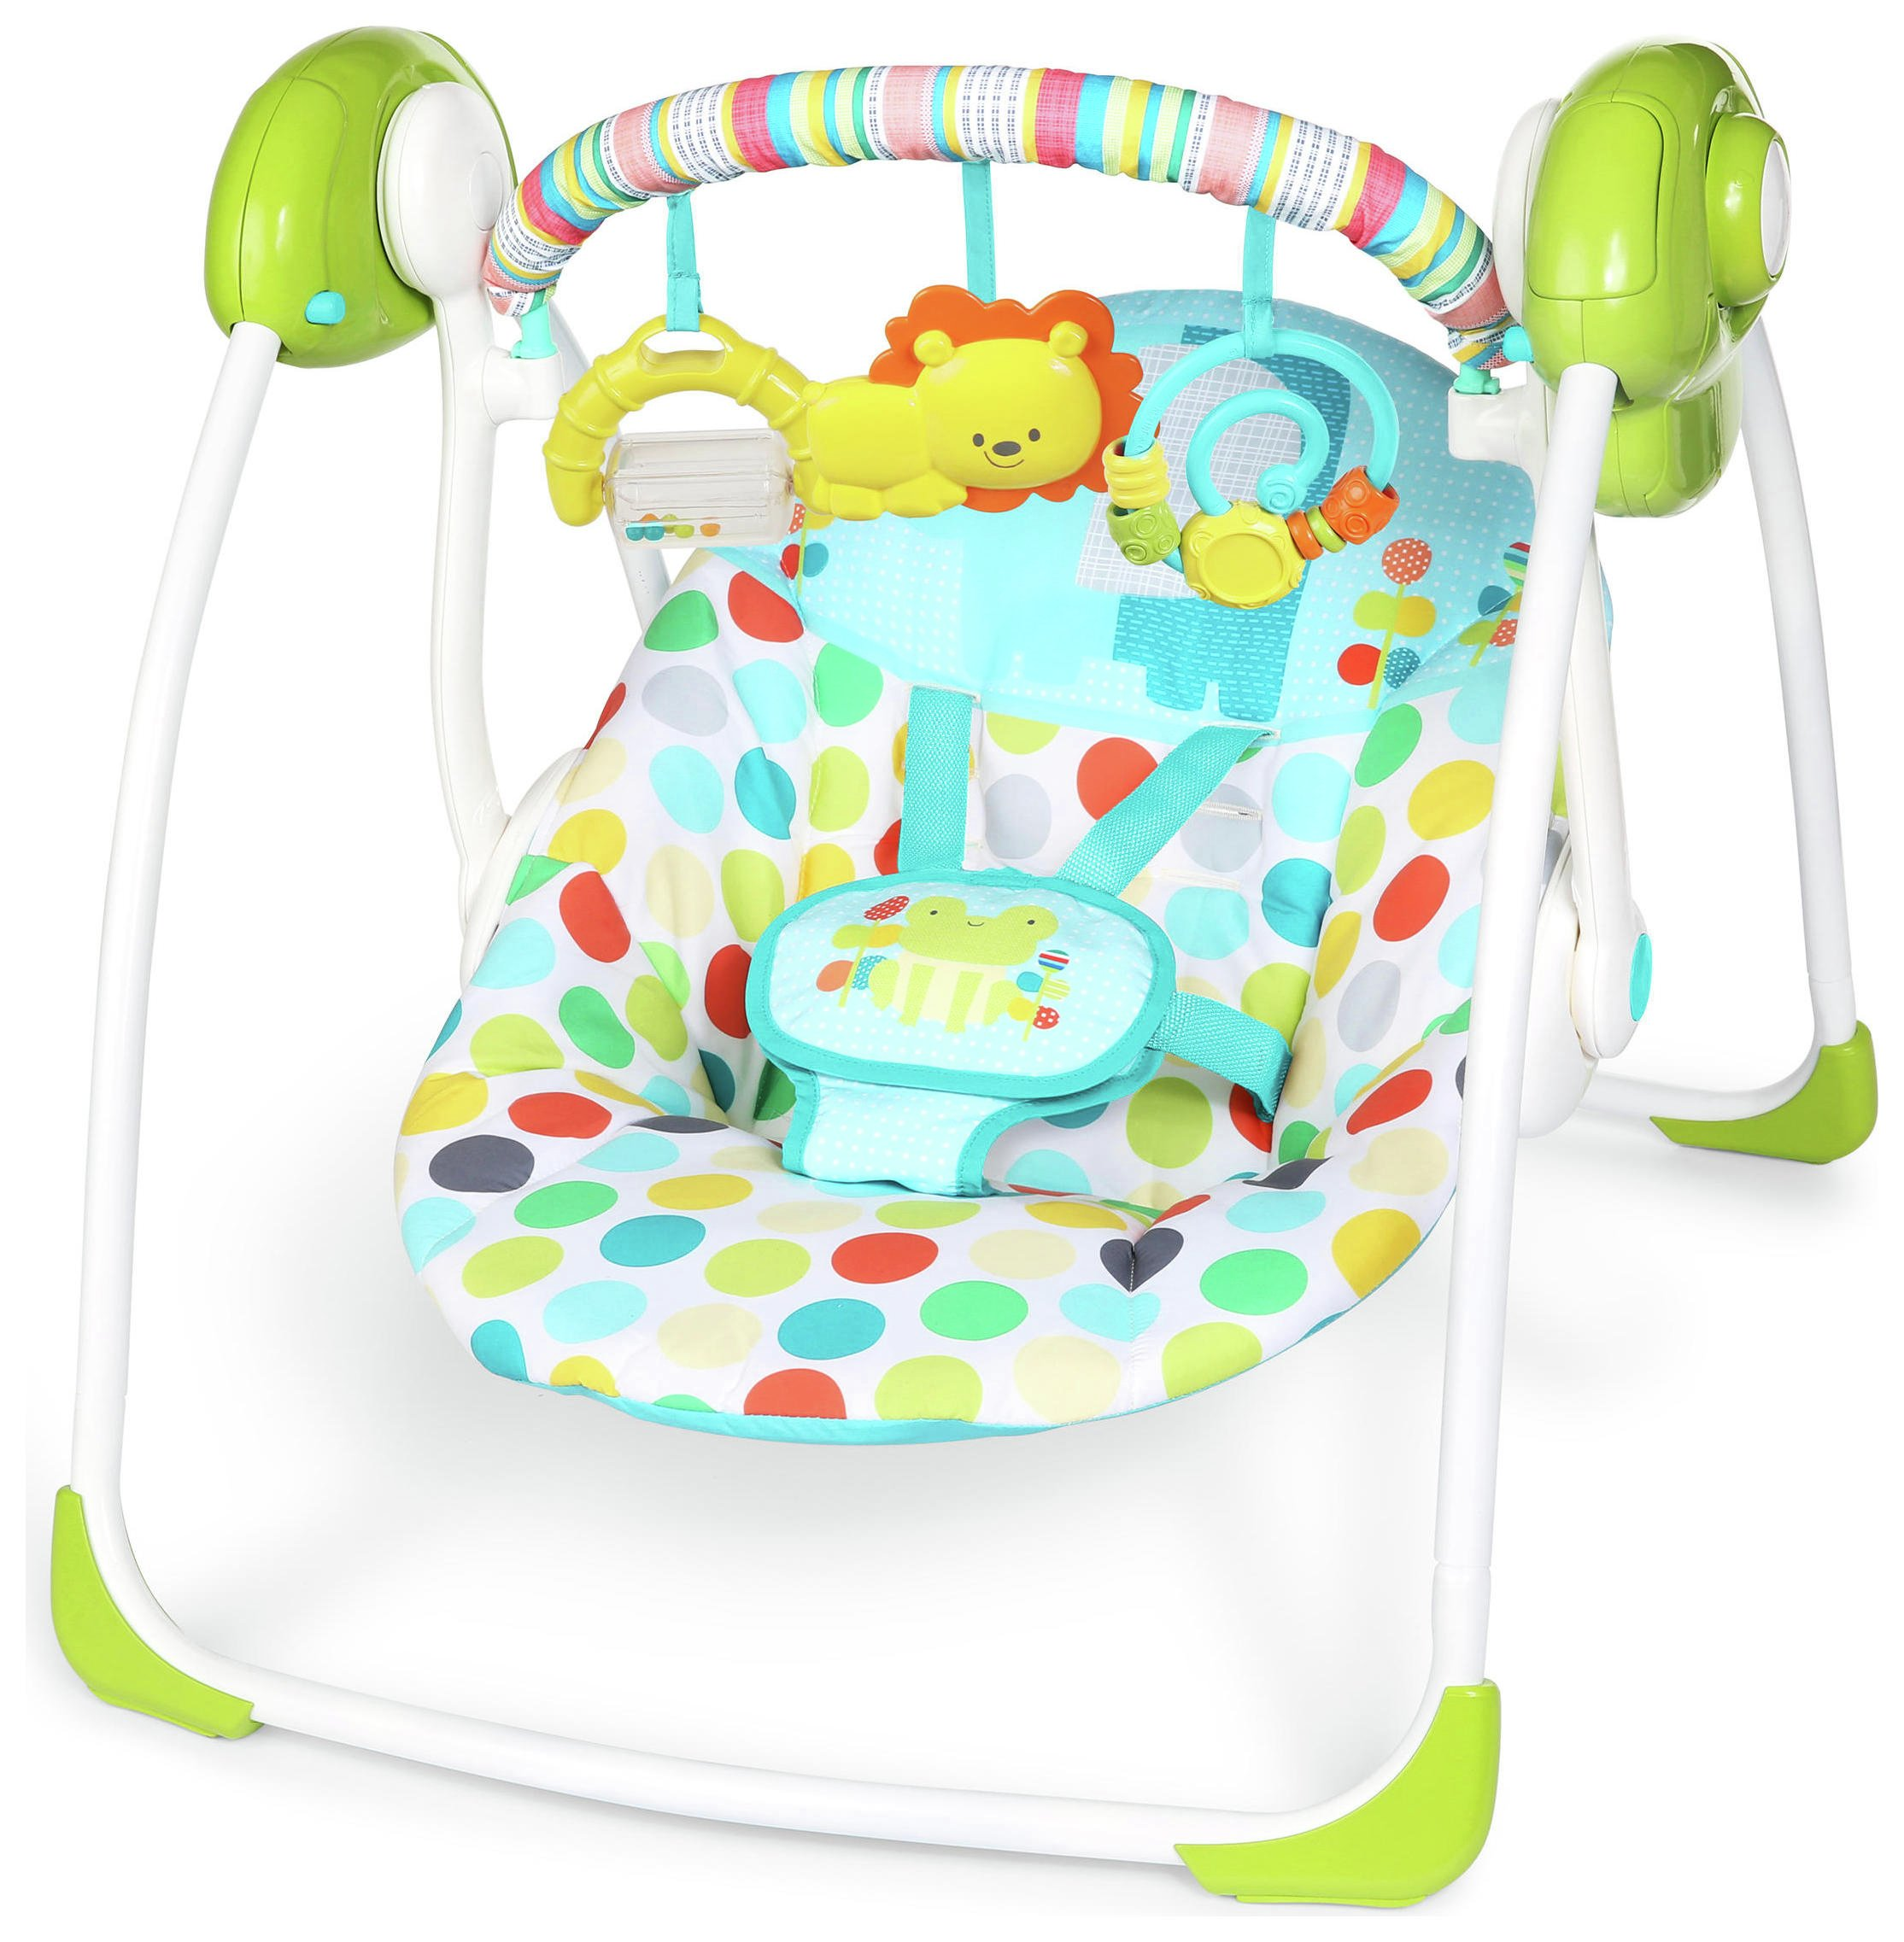 chair gym argos adirondack photo frame buy chad valley circus friends portable swing baby toys